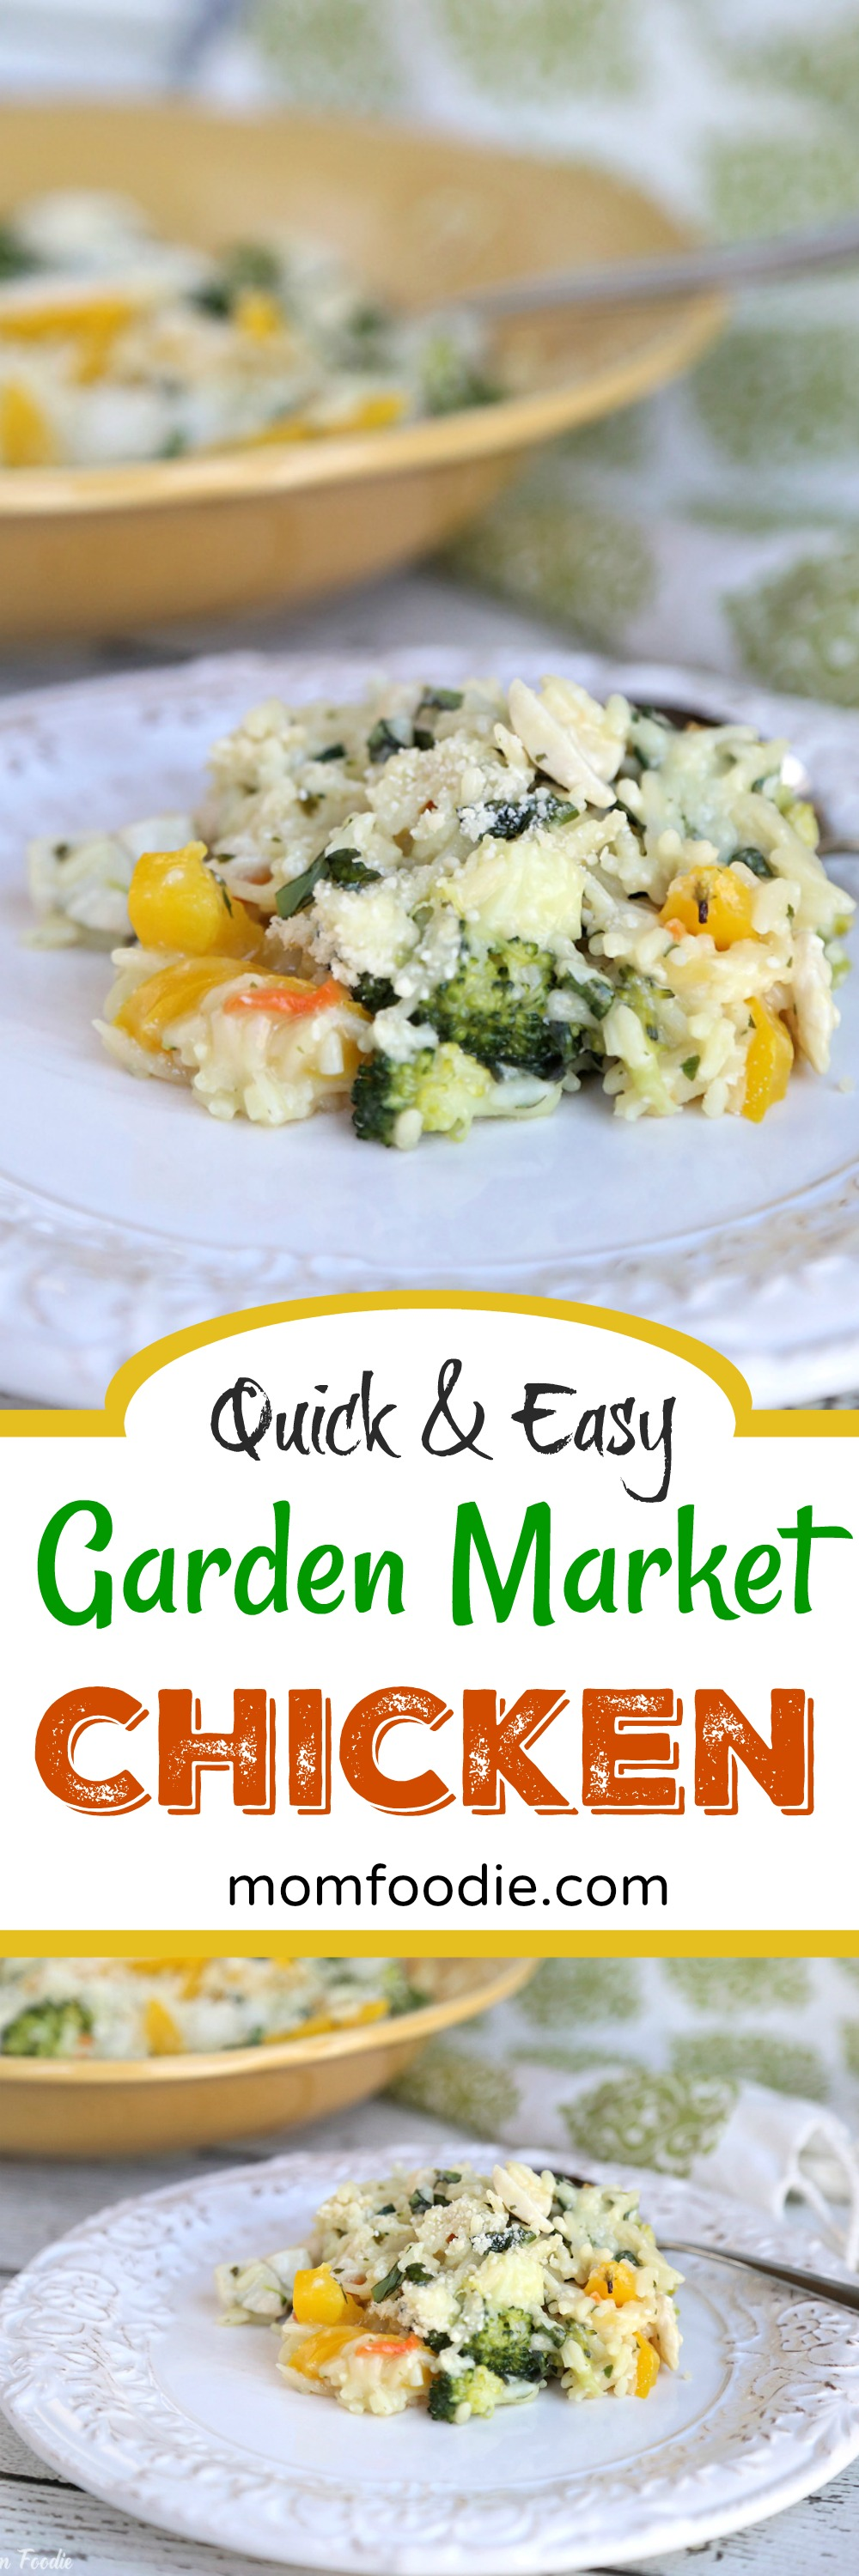 Easy Creamy Chicken Rice with fresh vegetables.  A quick meal the family will love!  You can grab all the ingredients right at #Walmart   lbx.la/Bgjz #EatBetterLiveBetter #ad #chickenrecipes